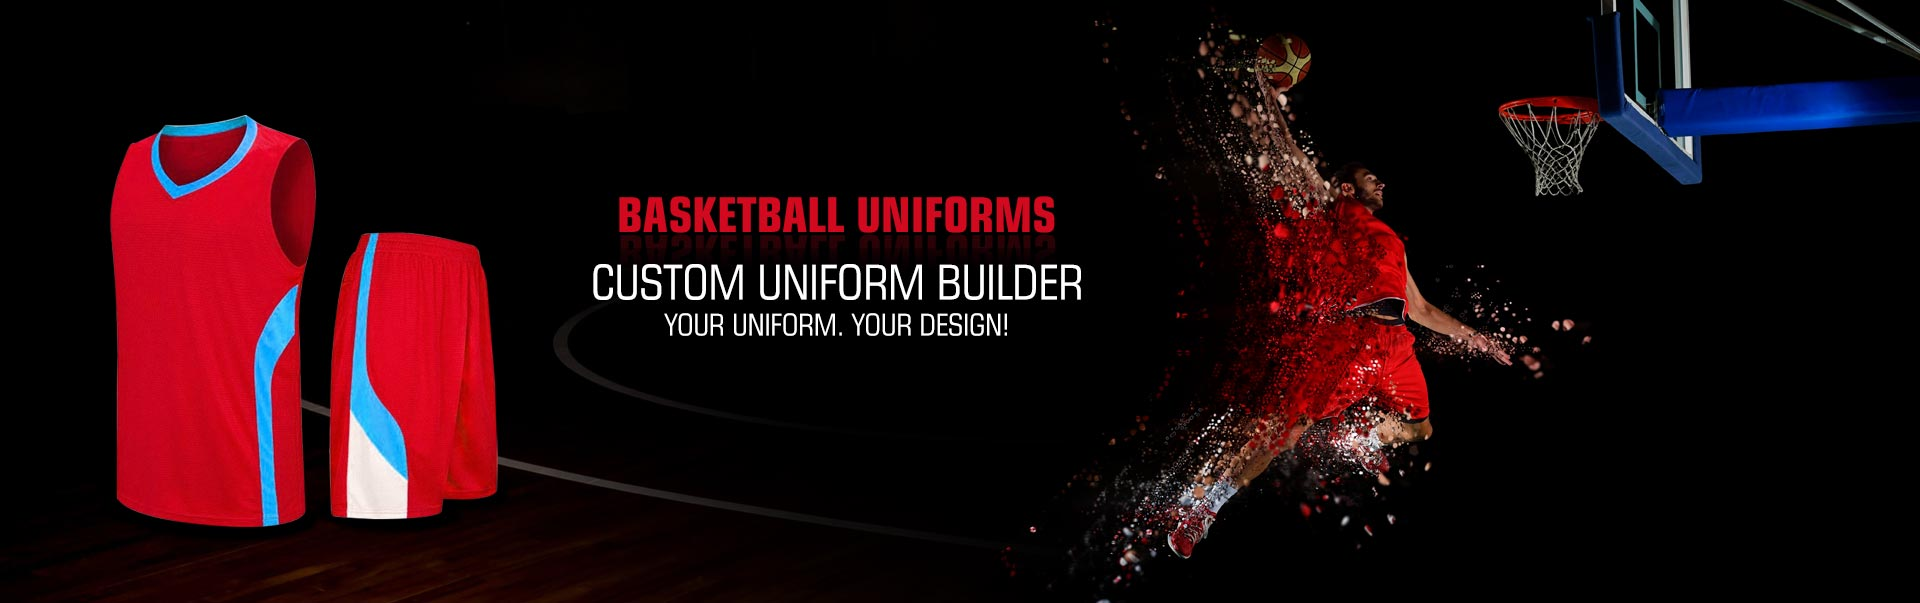 Basketball Uniforms Wholesaler, Suppliers in Arlington